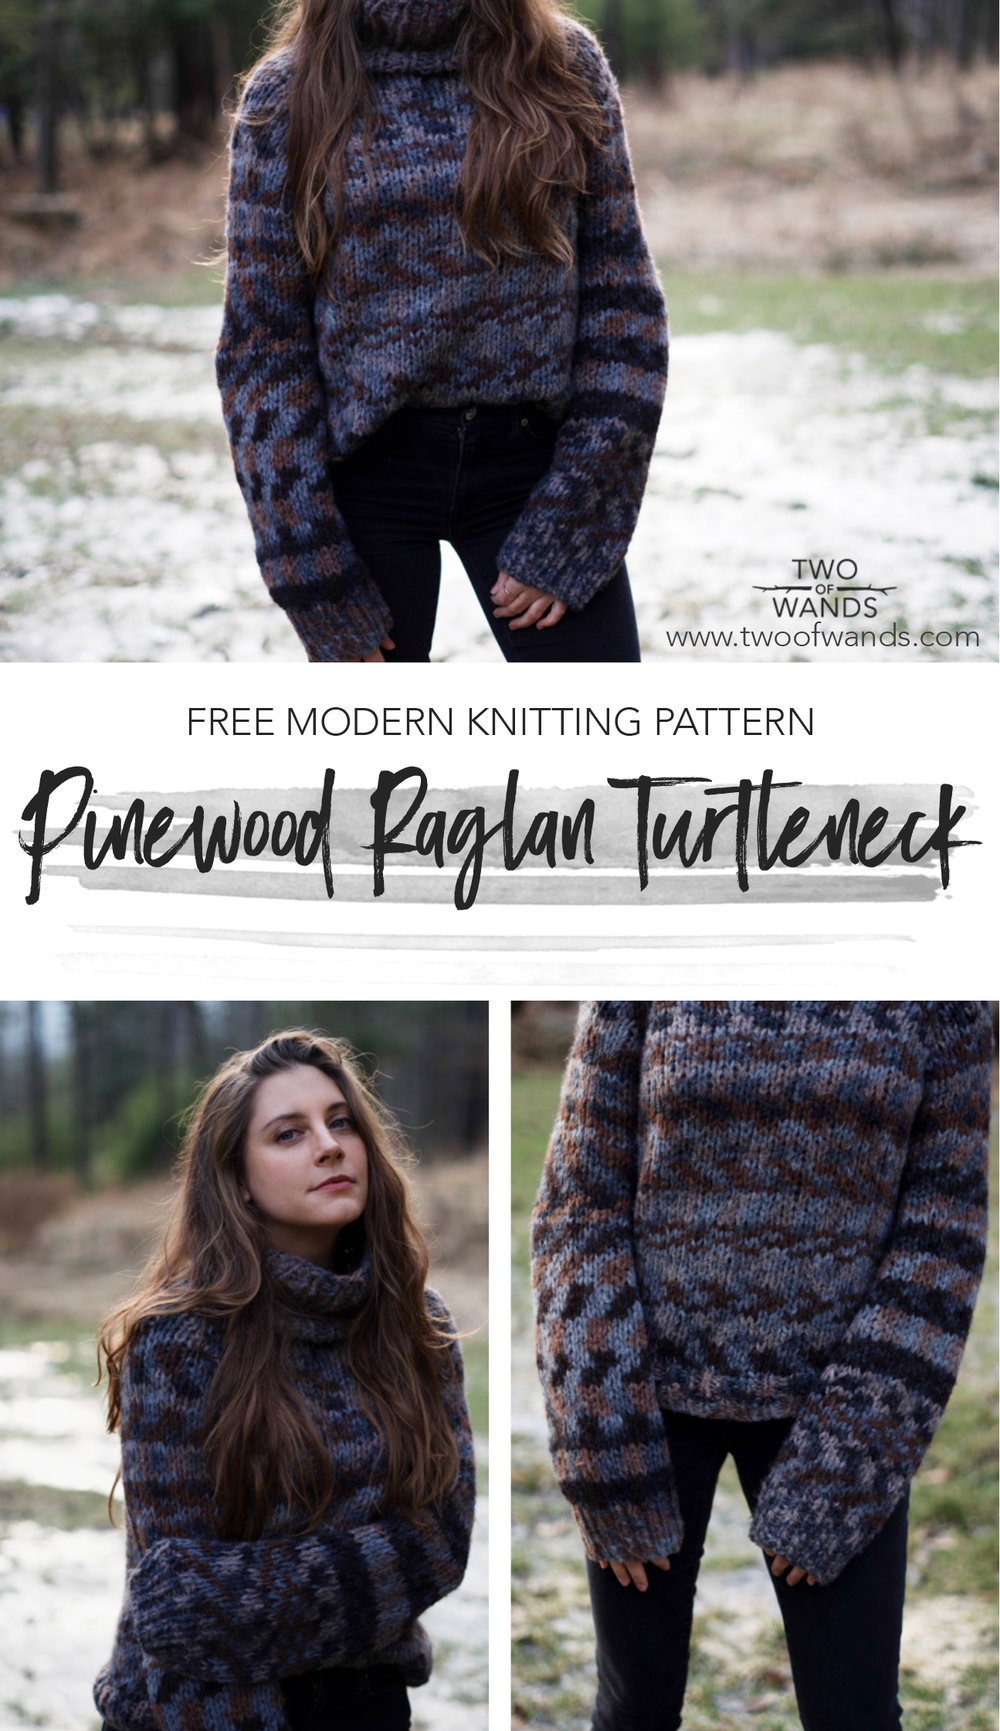 fb47f37330c6c8 Pinewood Raglan Turtleneck pattern by Two of Wands